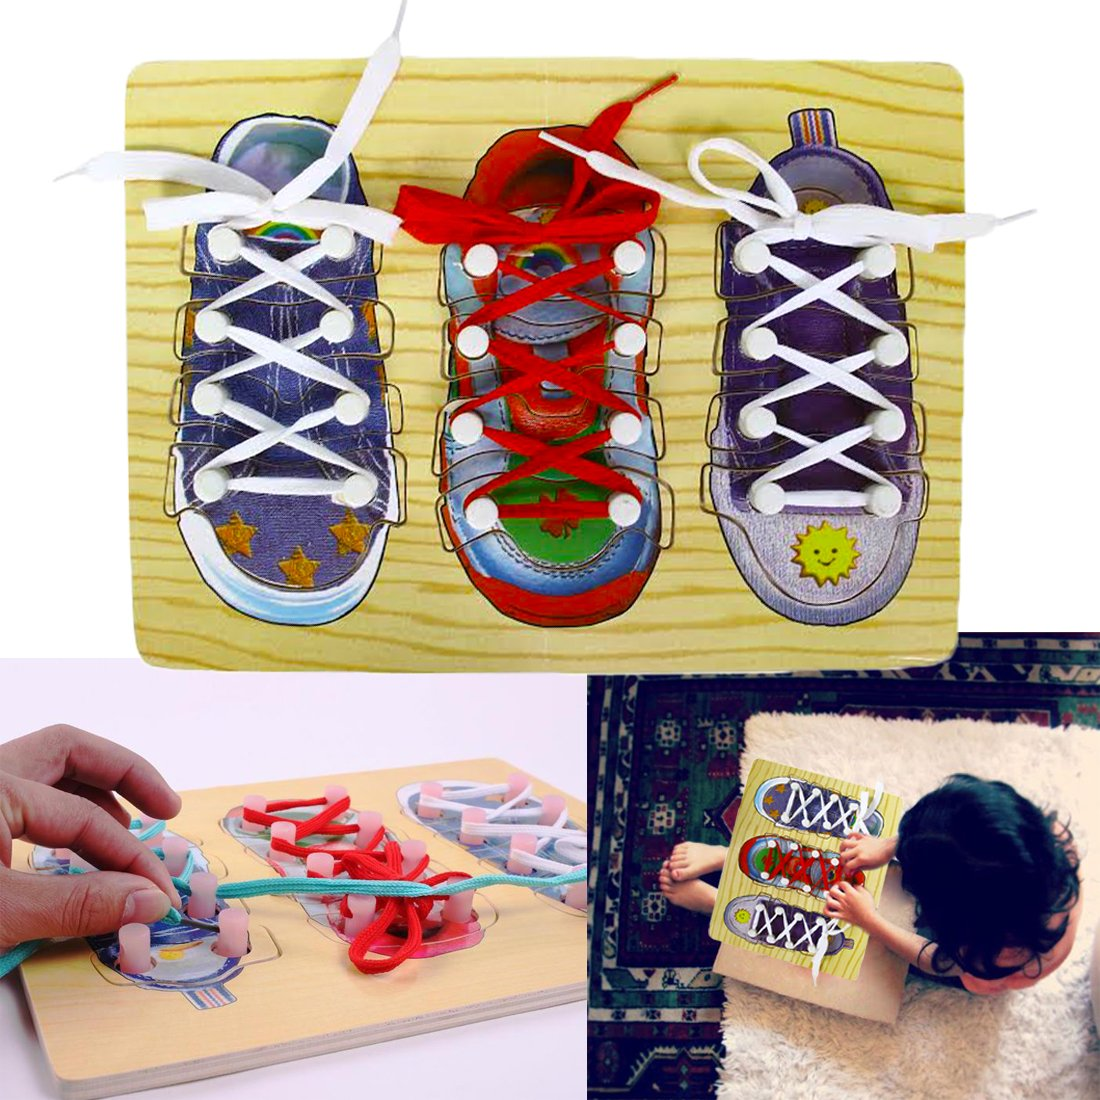 d279ac48c28c Amazon.com  DIY Shoe Lace Tying Board - Learn to Tie Your Shoe Laces Wooden  Puzzle Peg Board for Kids Ages 3 and Up